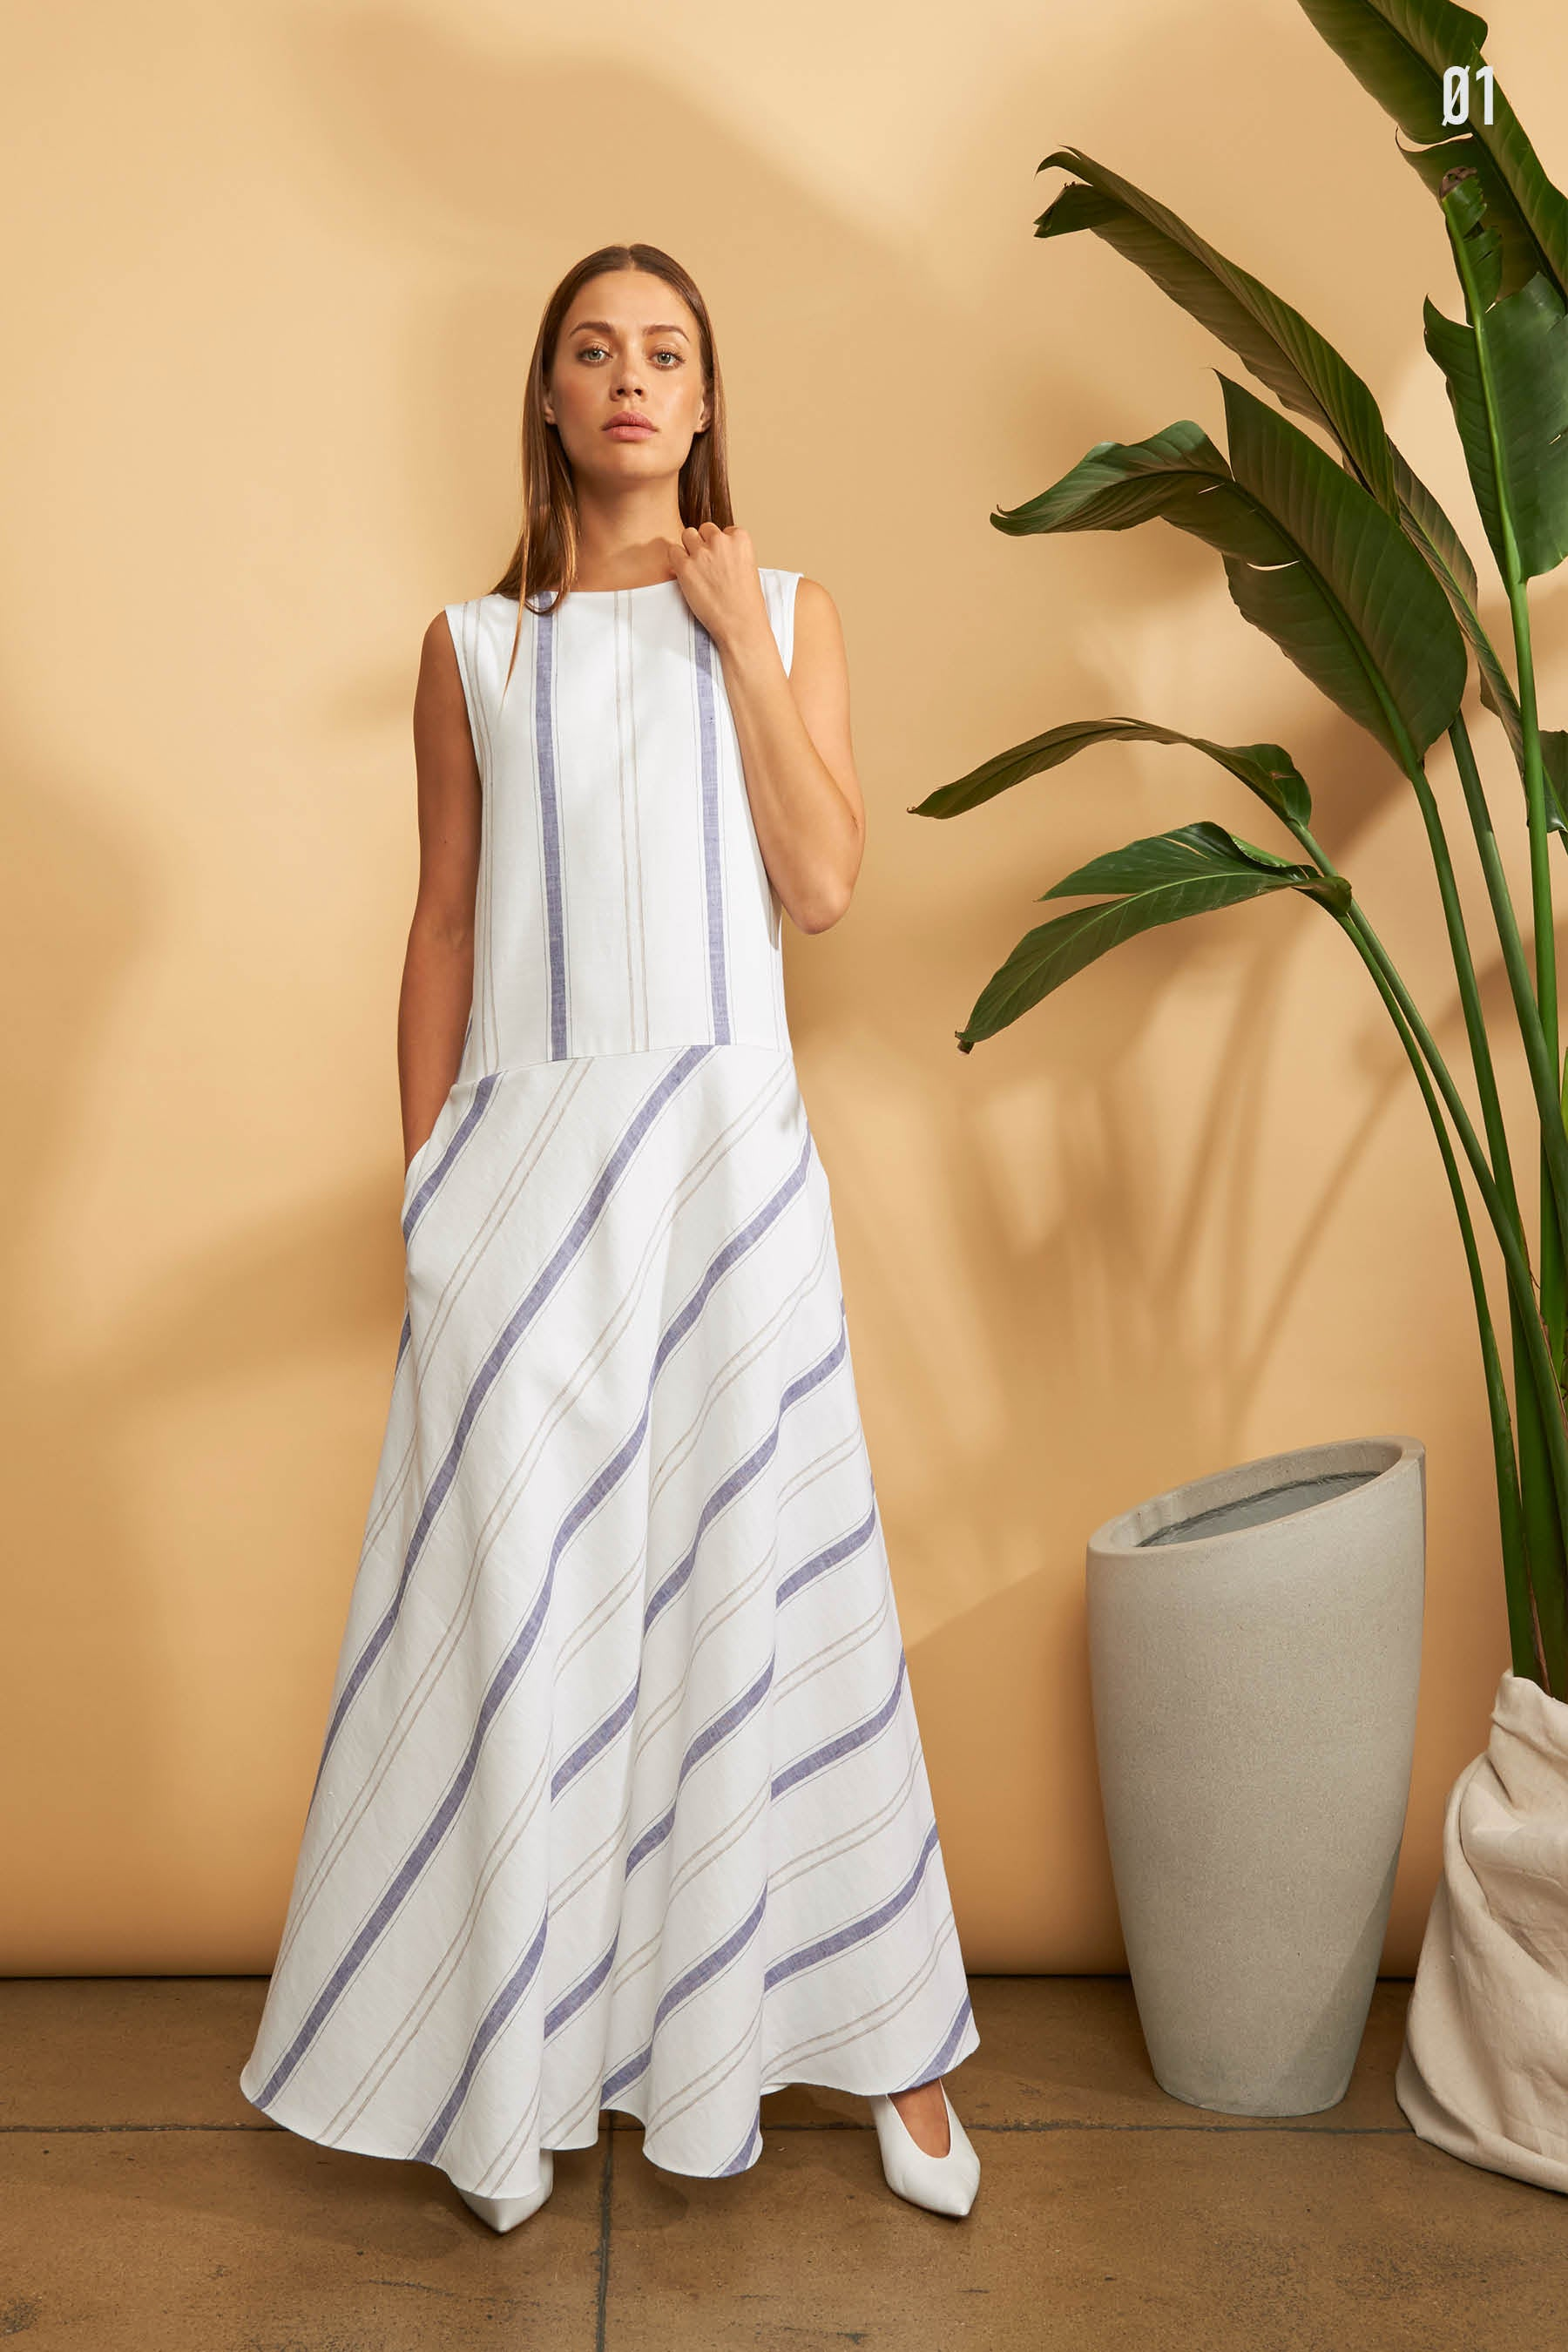 Kal Rieman Spring 2018 Lookbook Look 1